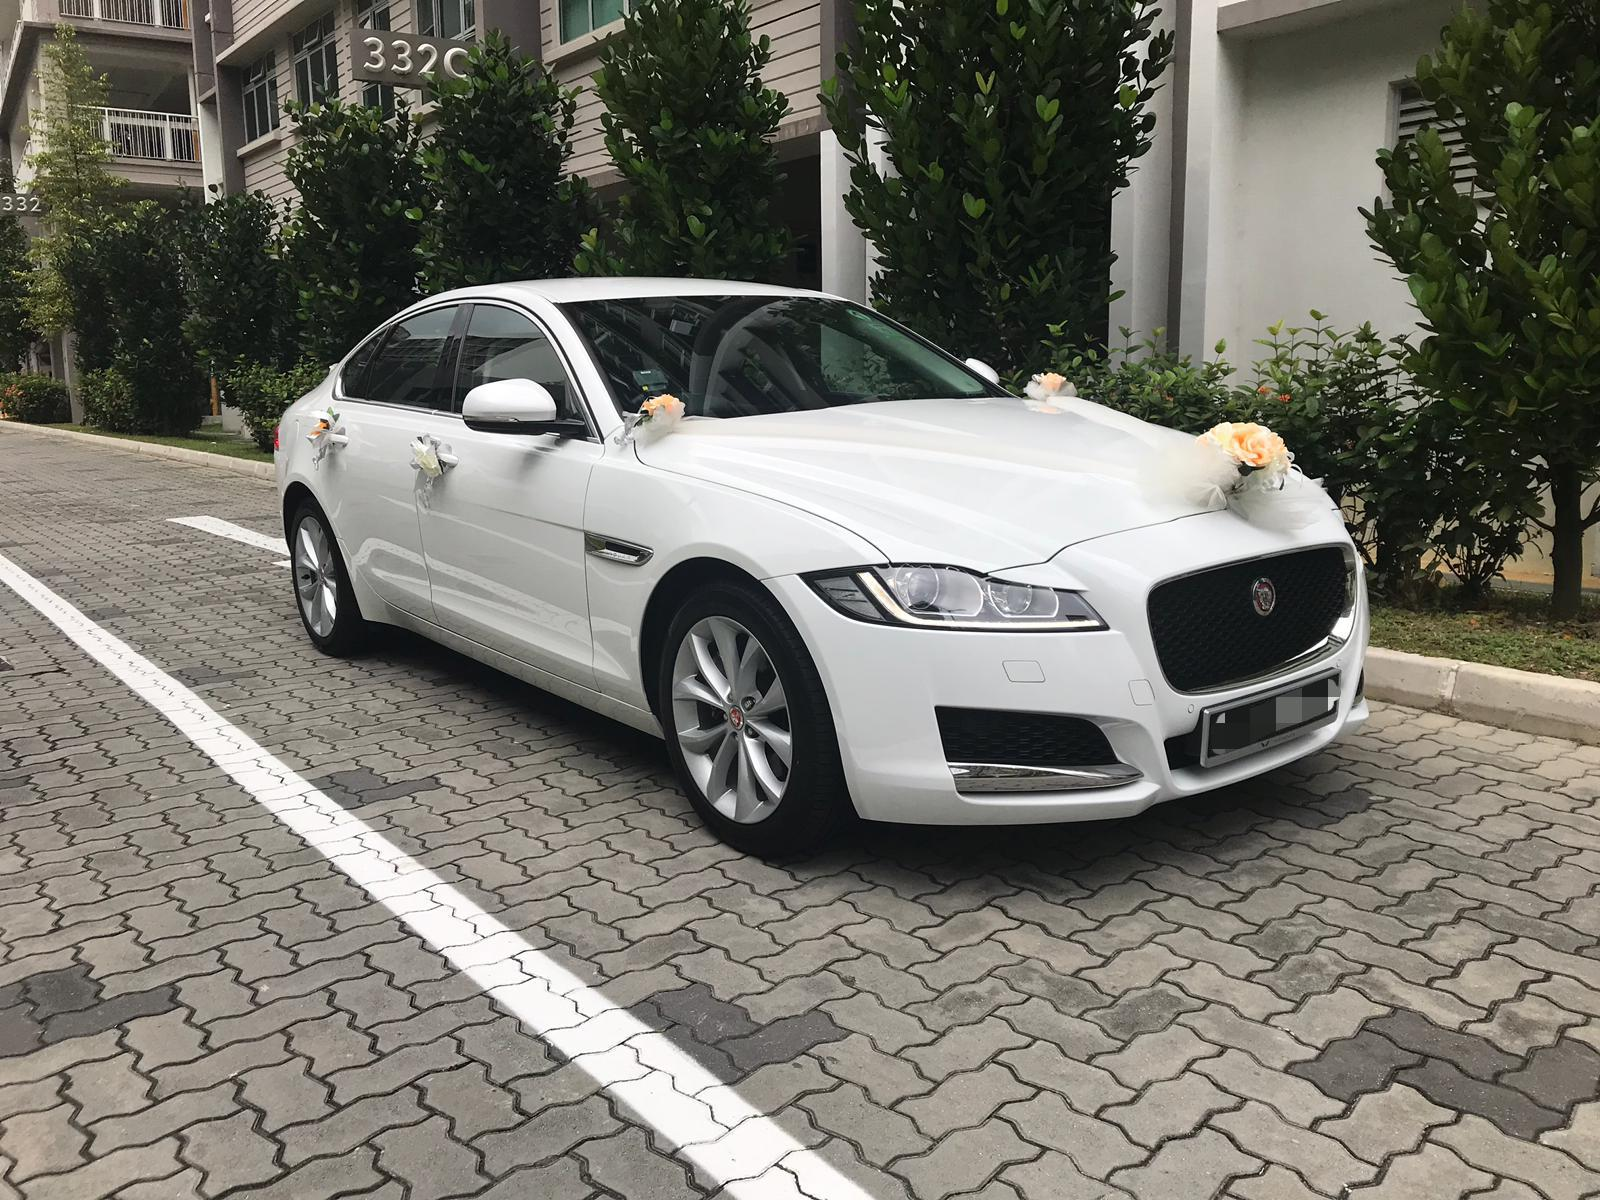 Jaguar+wedding+car.jpg